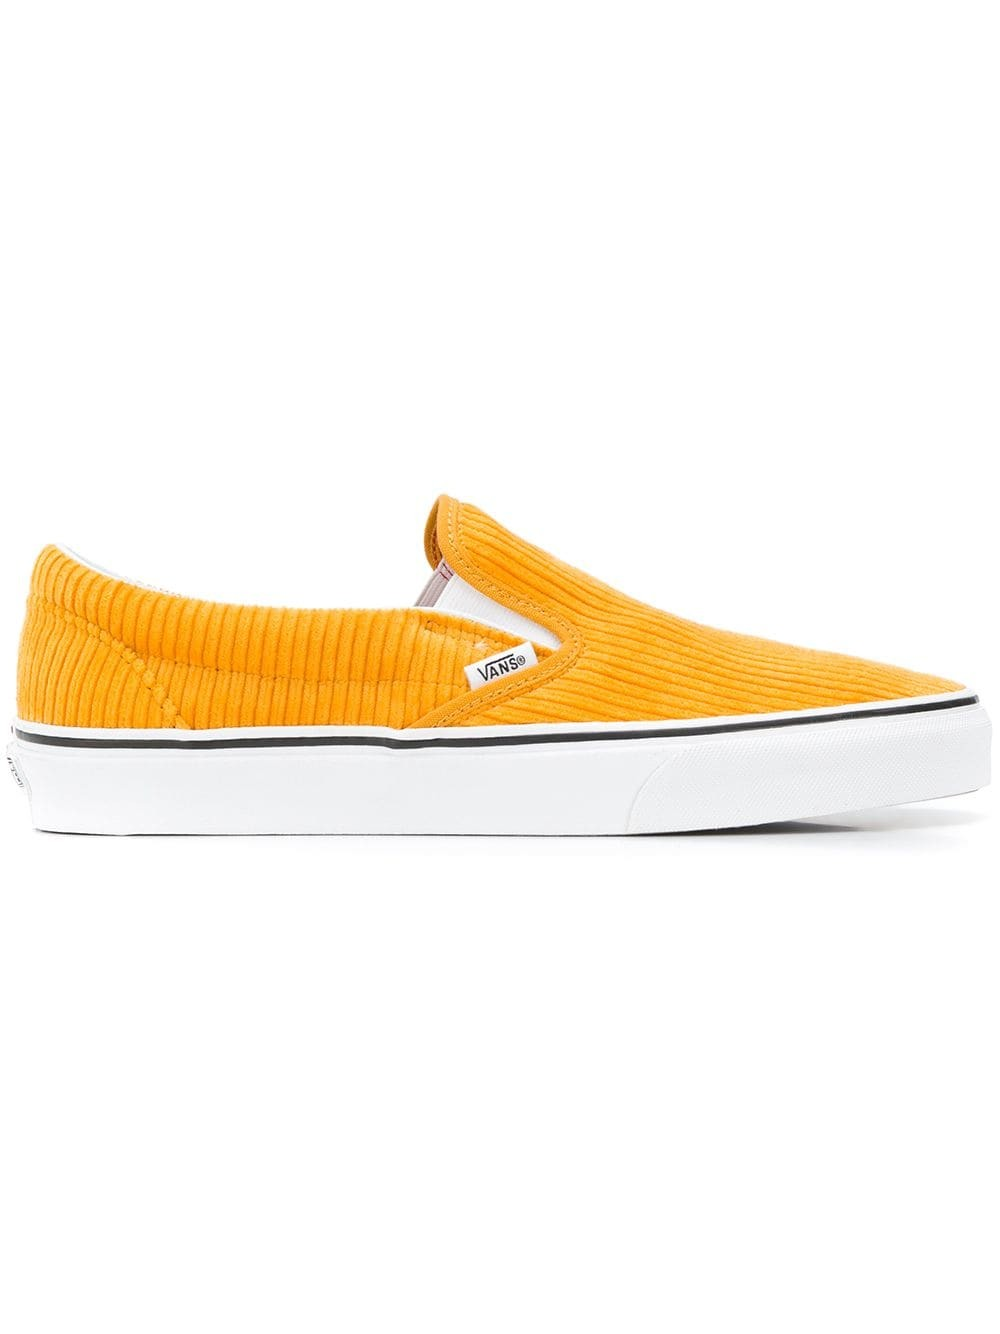 Vans Classic Slip-on Fall 2018 Jaune VN0A38F7U7D1